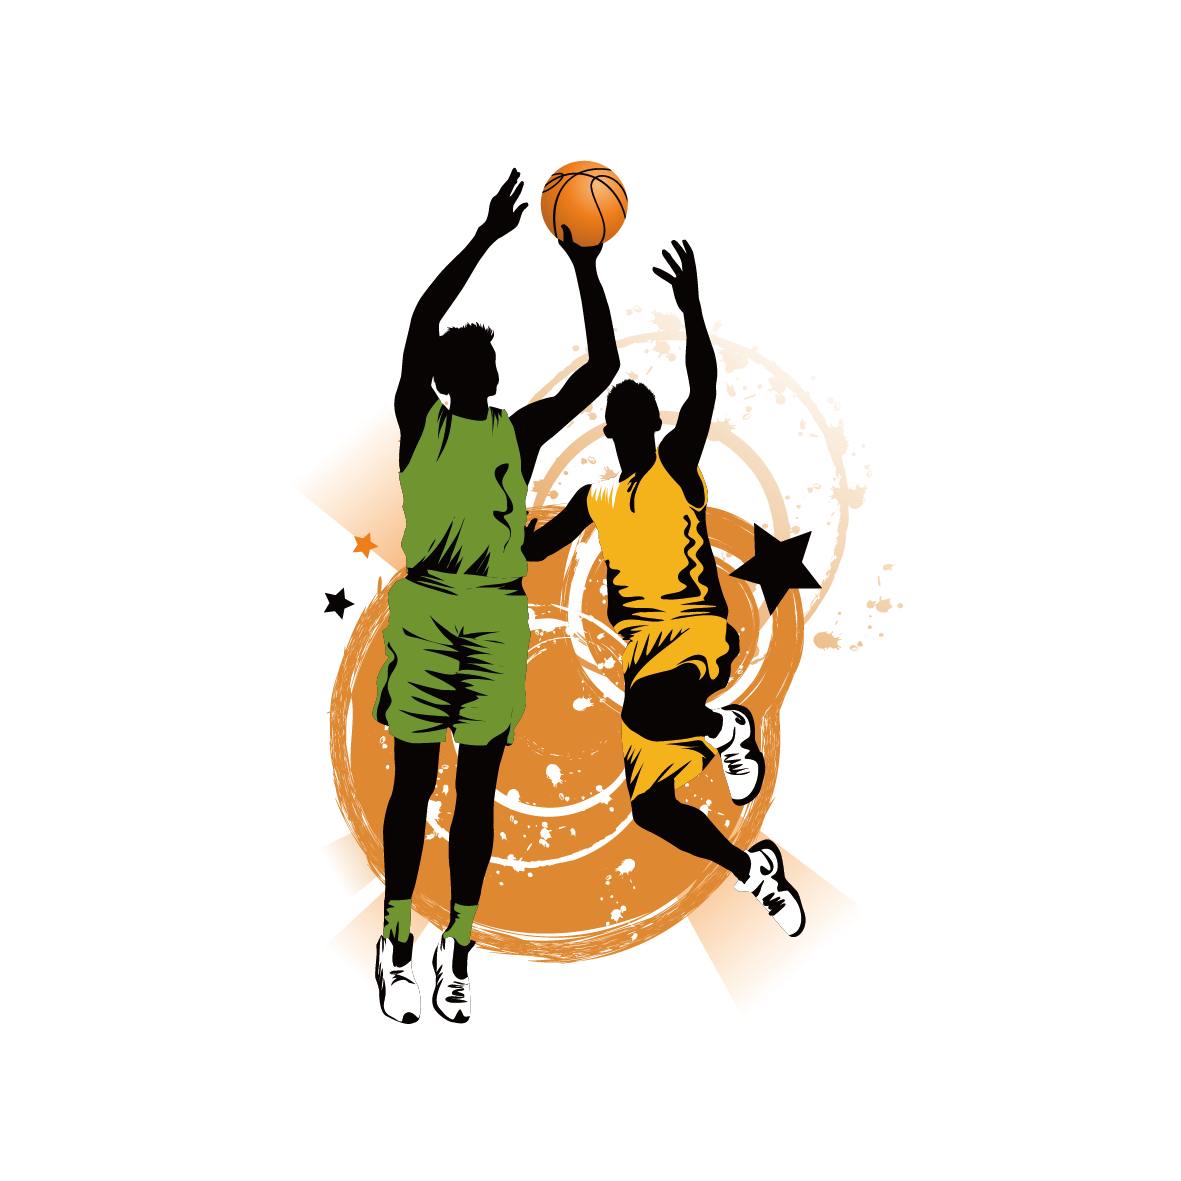 1181x1181 Basketball Slam Dunk Clip Art